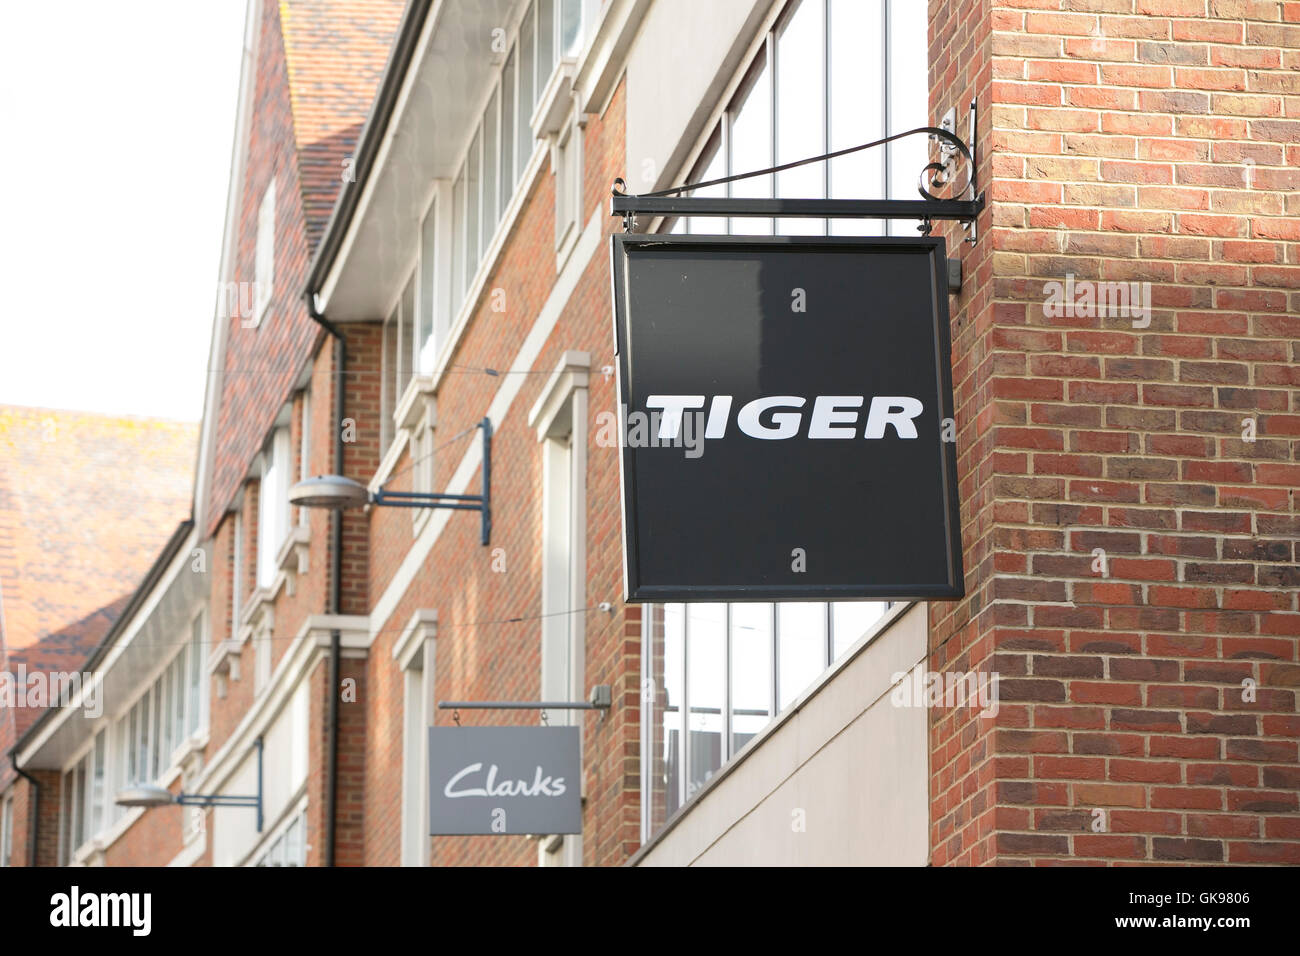 enlazar falta leninismo  Sign for Tiger and Clarks on a busy street in Whitefriars retail Stock  Photo - Alamy